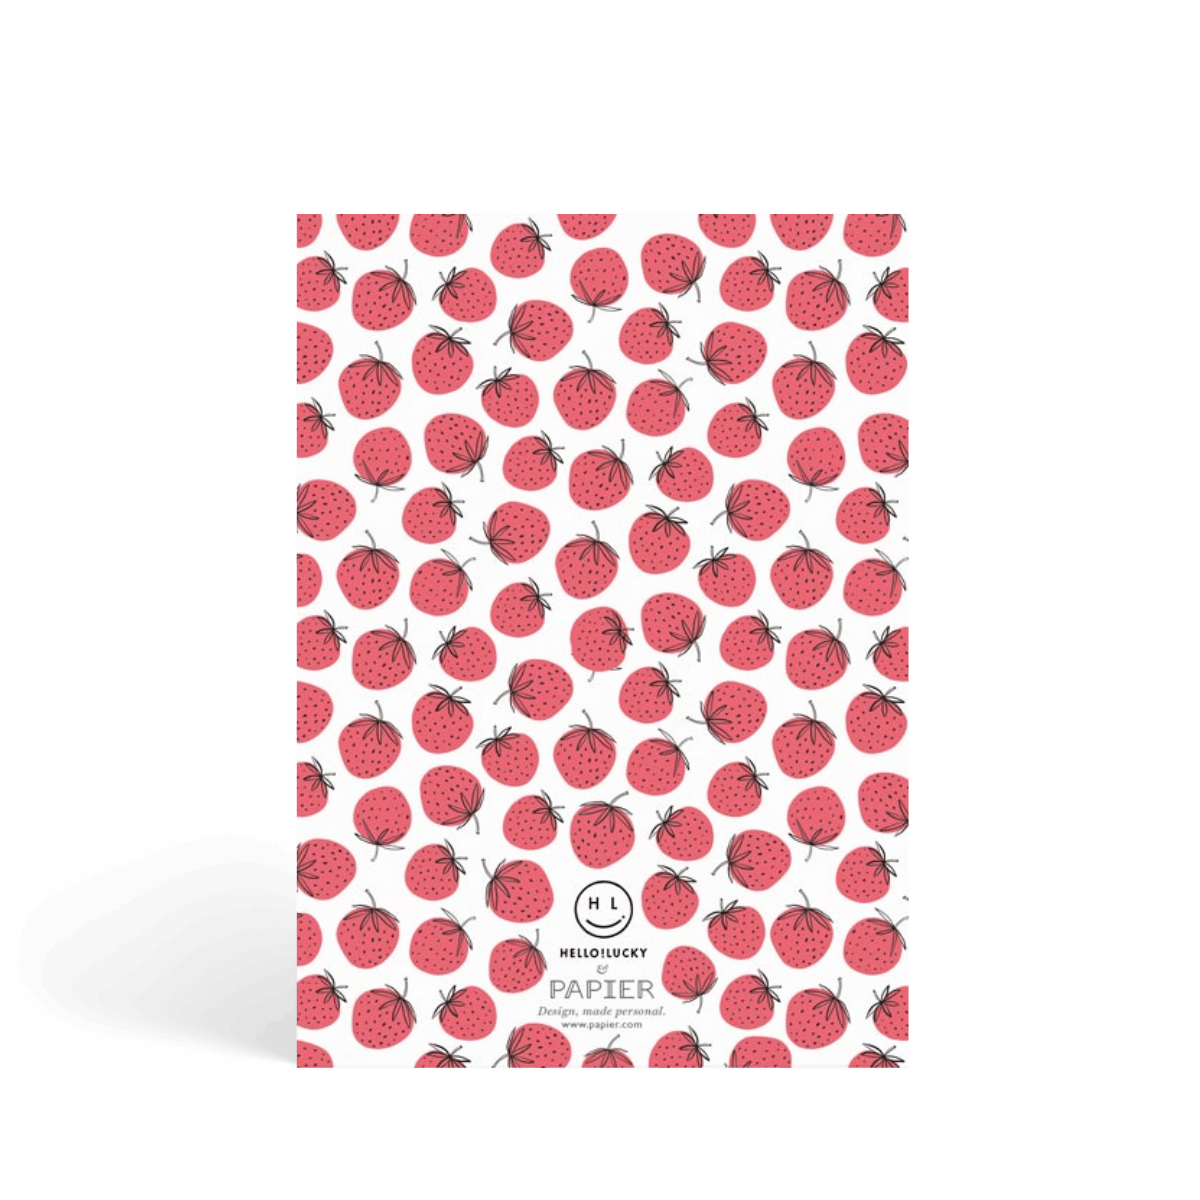 Https%3a%2f%2fwww.papier.com%2fproduct image%2f29419%2f5%2fstrawberries 7409 arriere 1556892359.png?ixlib=rb 1.1